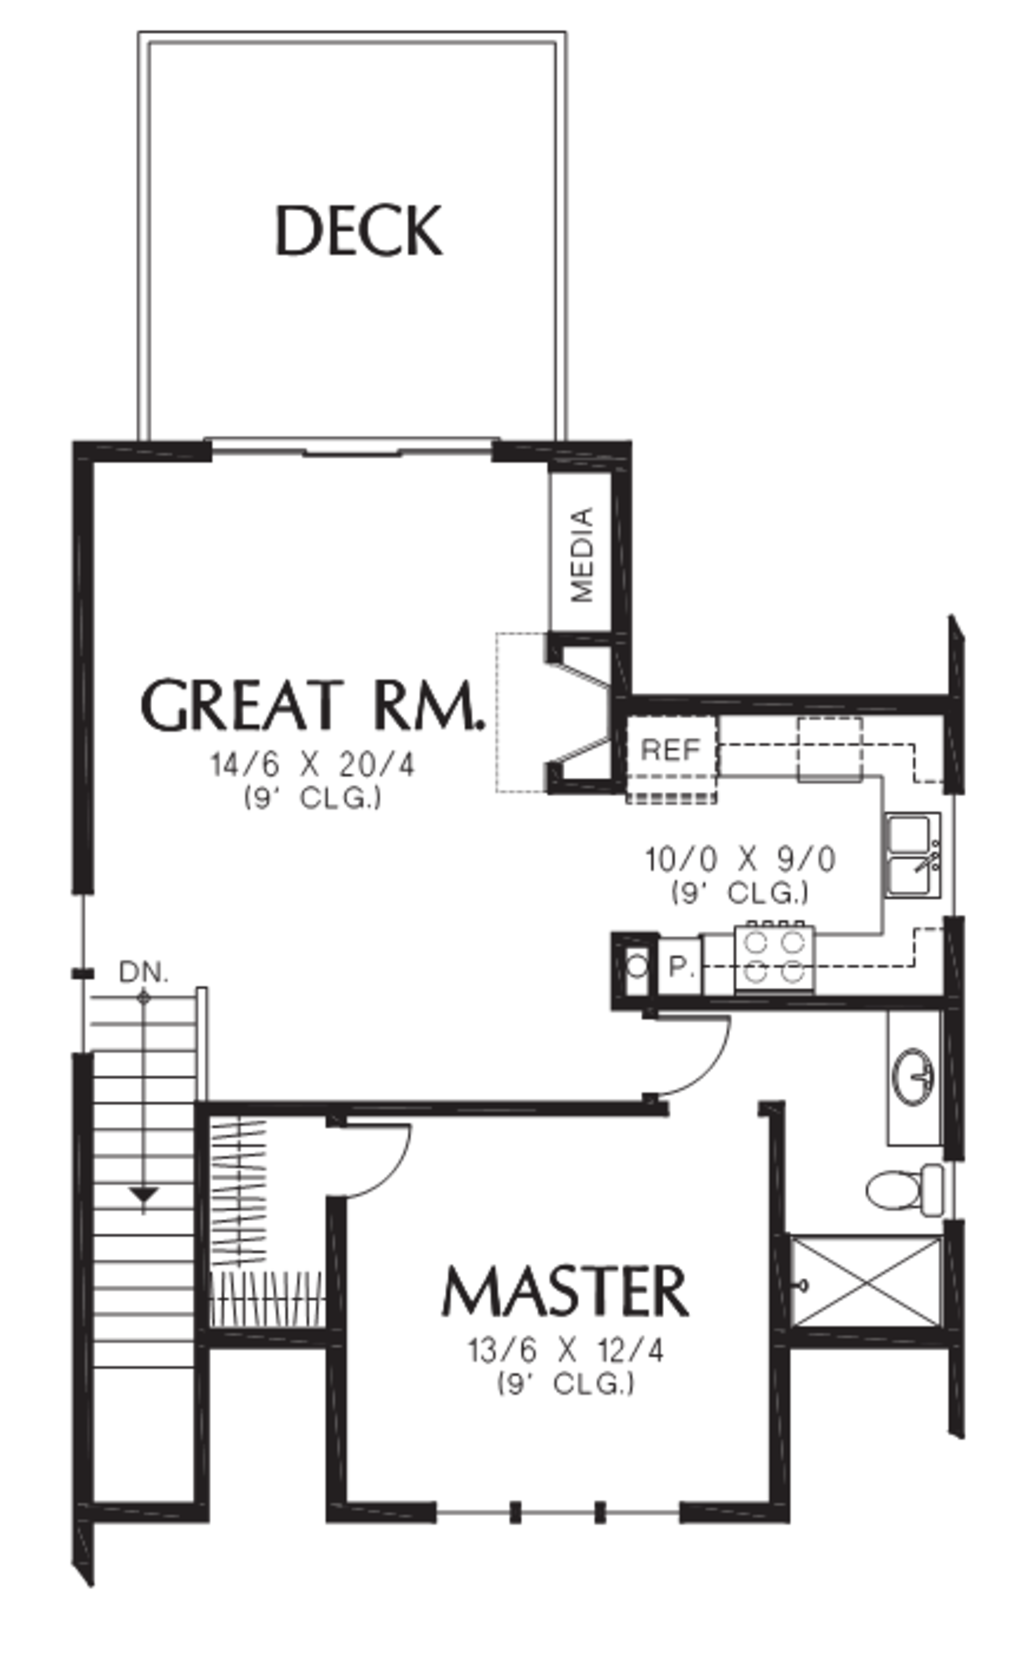 Cottage style house plan 3 beds 2 baths 1384 sq ft plan 48